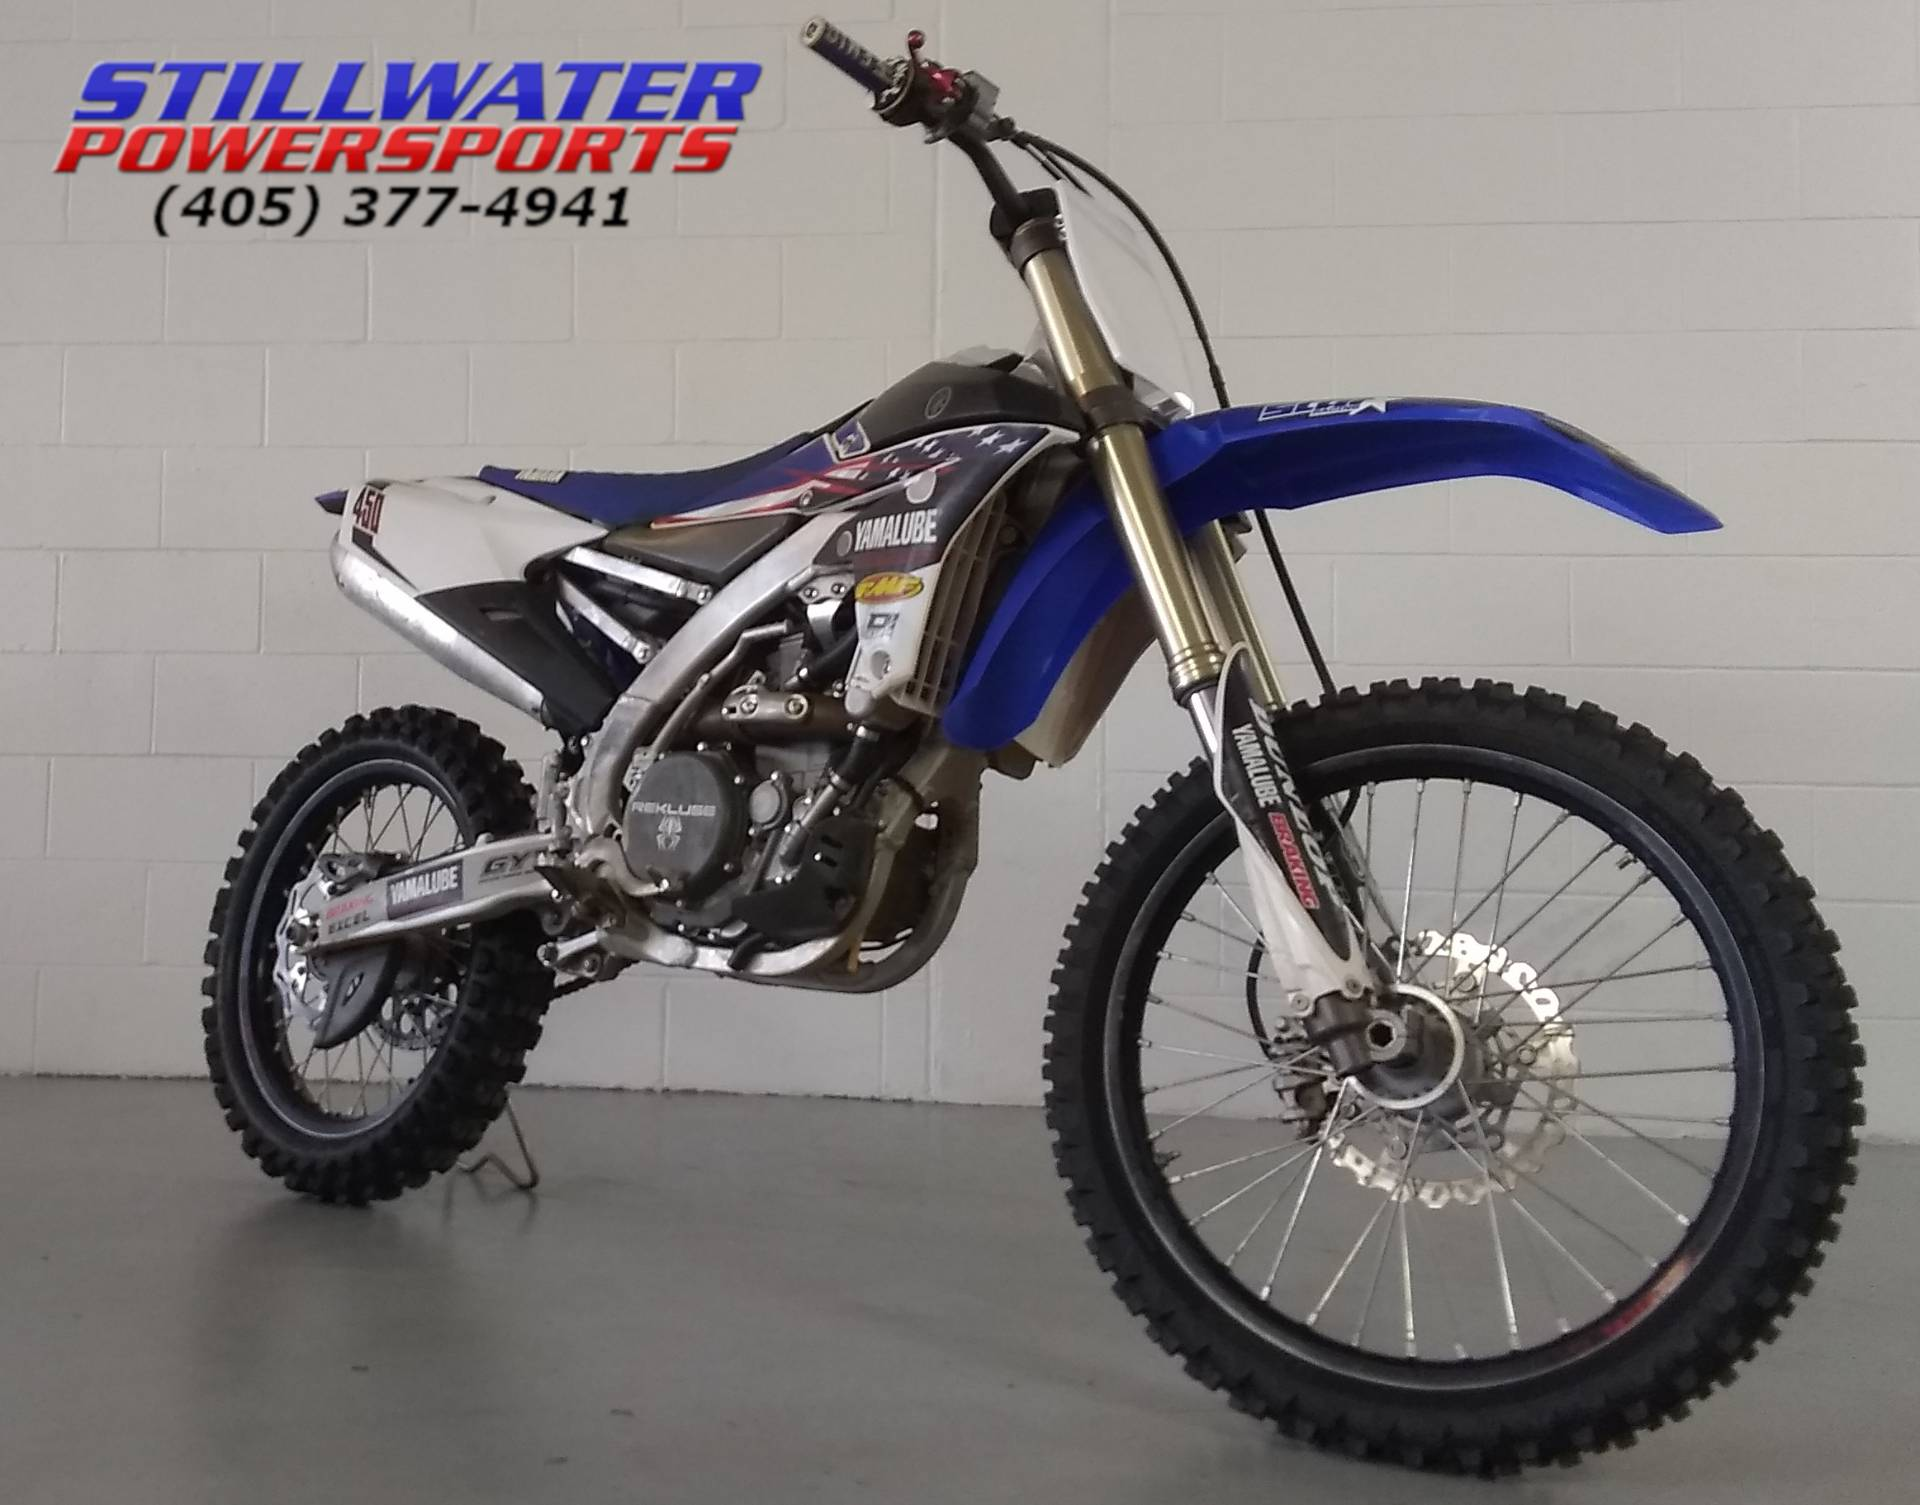 2014 Yamaha YZ450F in Stillwater, Oklahoma - Photo 3